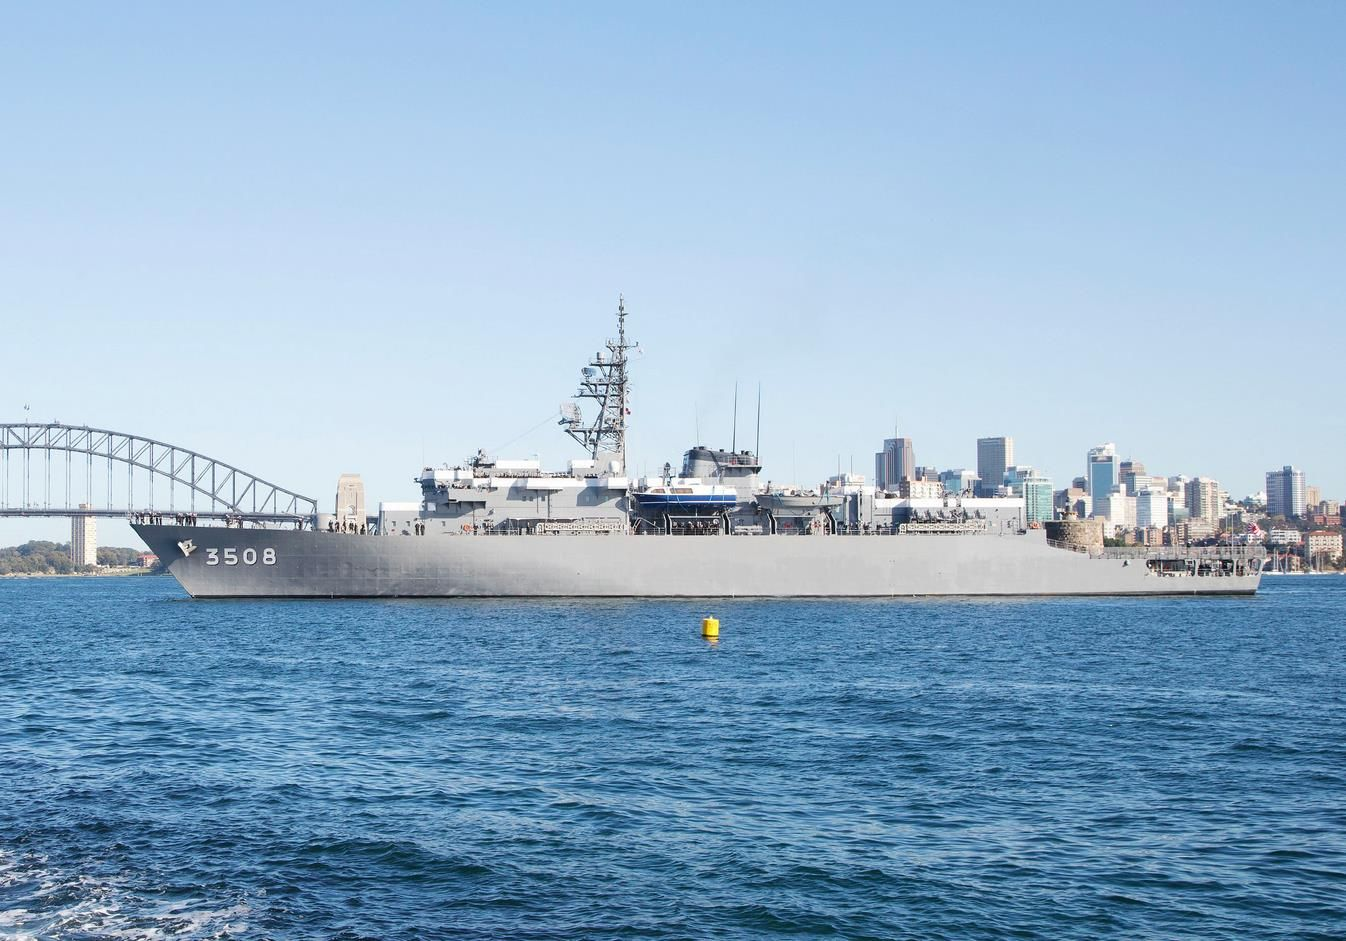 Three Japanese Maritime Self-Defence Force Ships, JDS Kashima, JDS Setoyuki and JDS Asagiri have arrived at Garden Island, Sydney, for a three-day port visit. The ships are part of the JMSDF Training Squadron. Since 1956, the Squadron has been conducting annual overseas training cruises to develop the knowledge and skills of Junior Officers, who have completed the General Officer Midshipman's Course at the JMSDF candidate school.